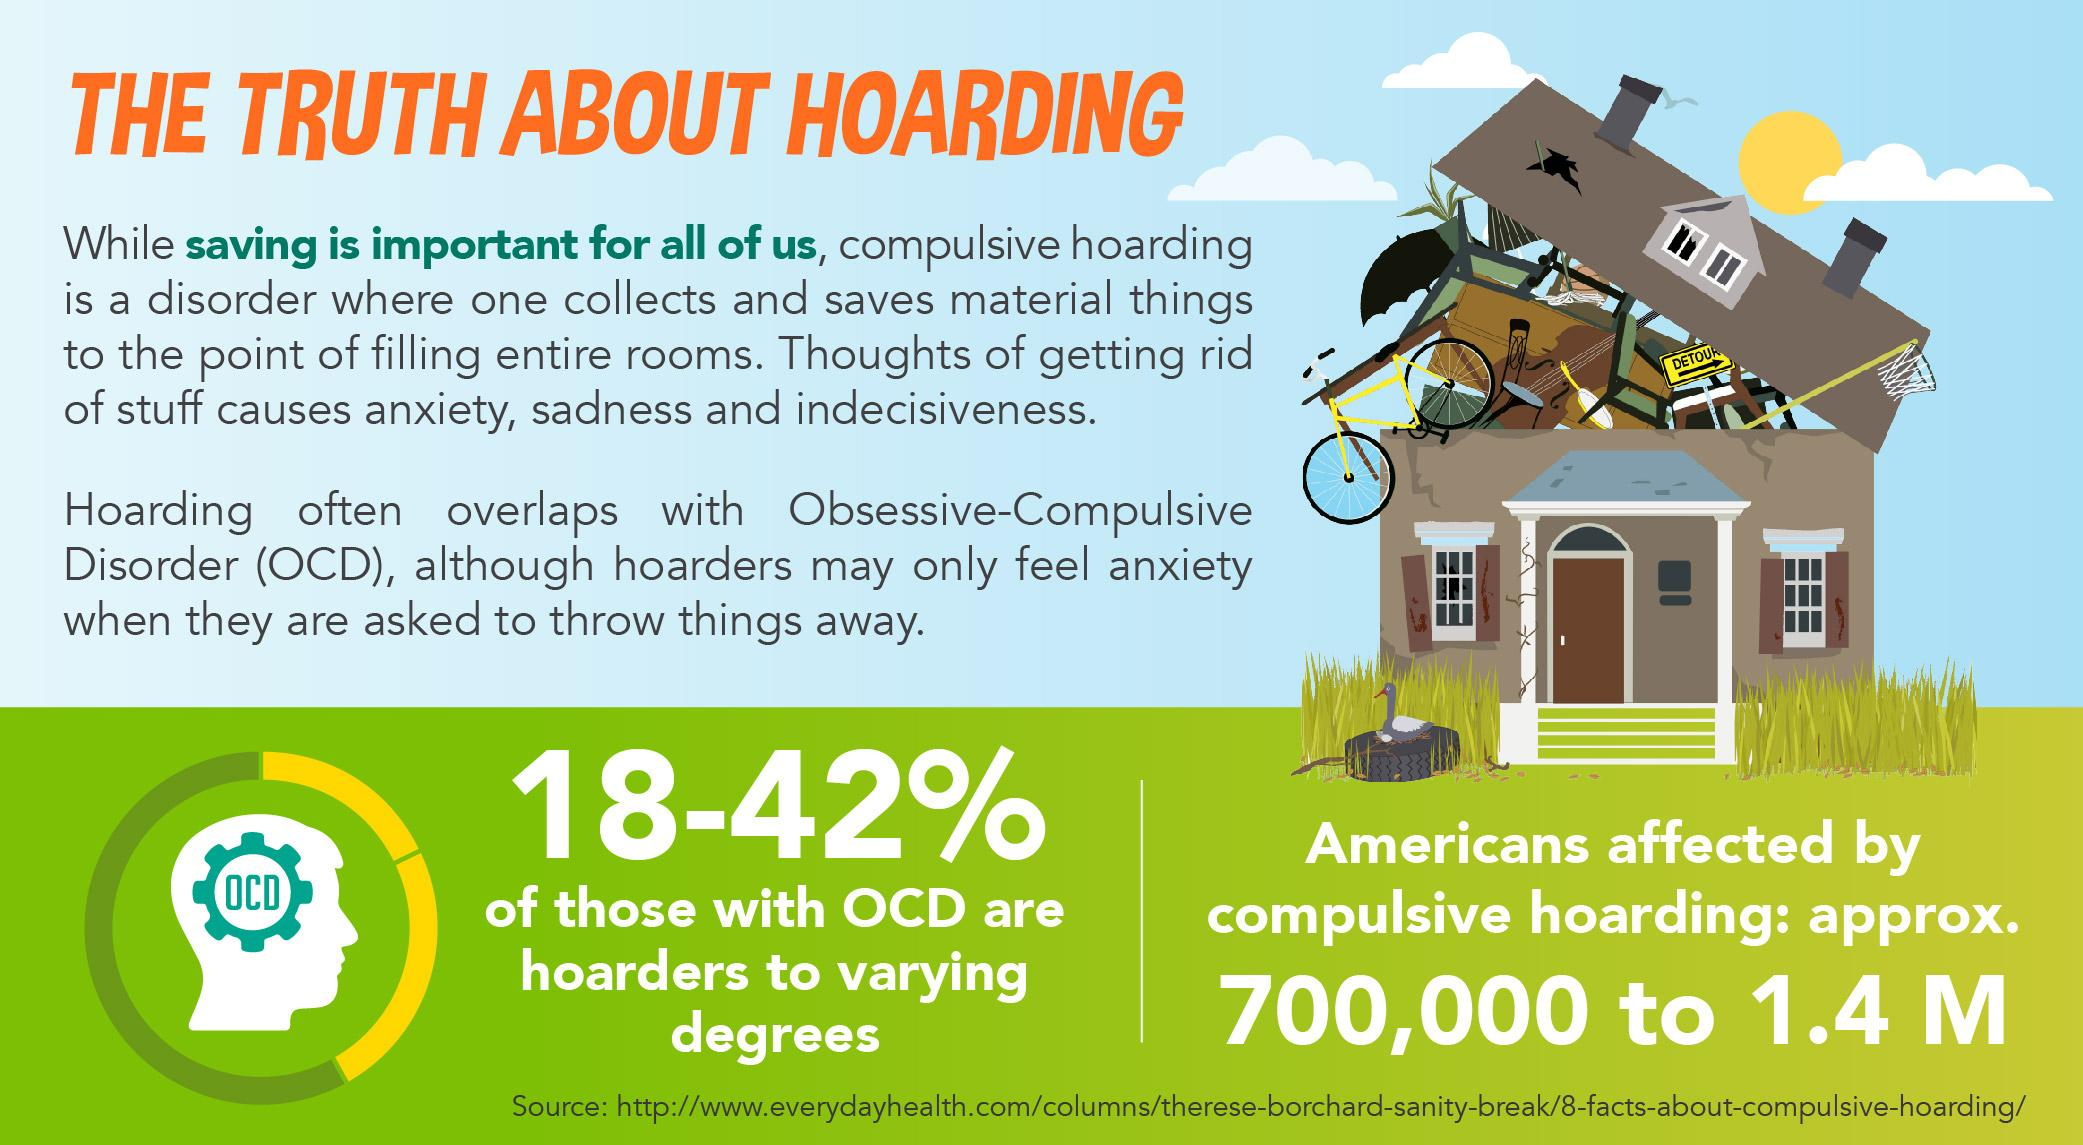 The Truth about Hoarding statisics